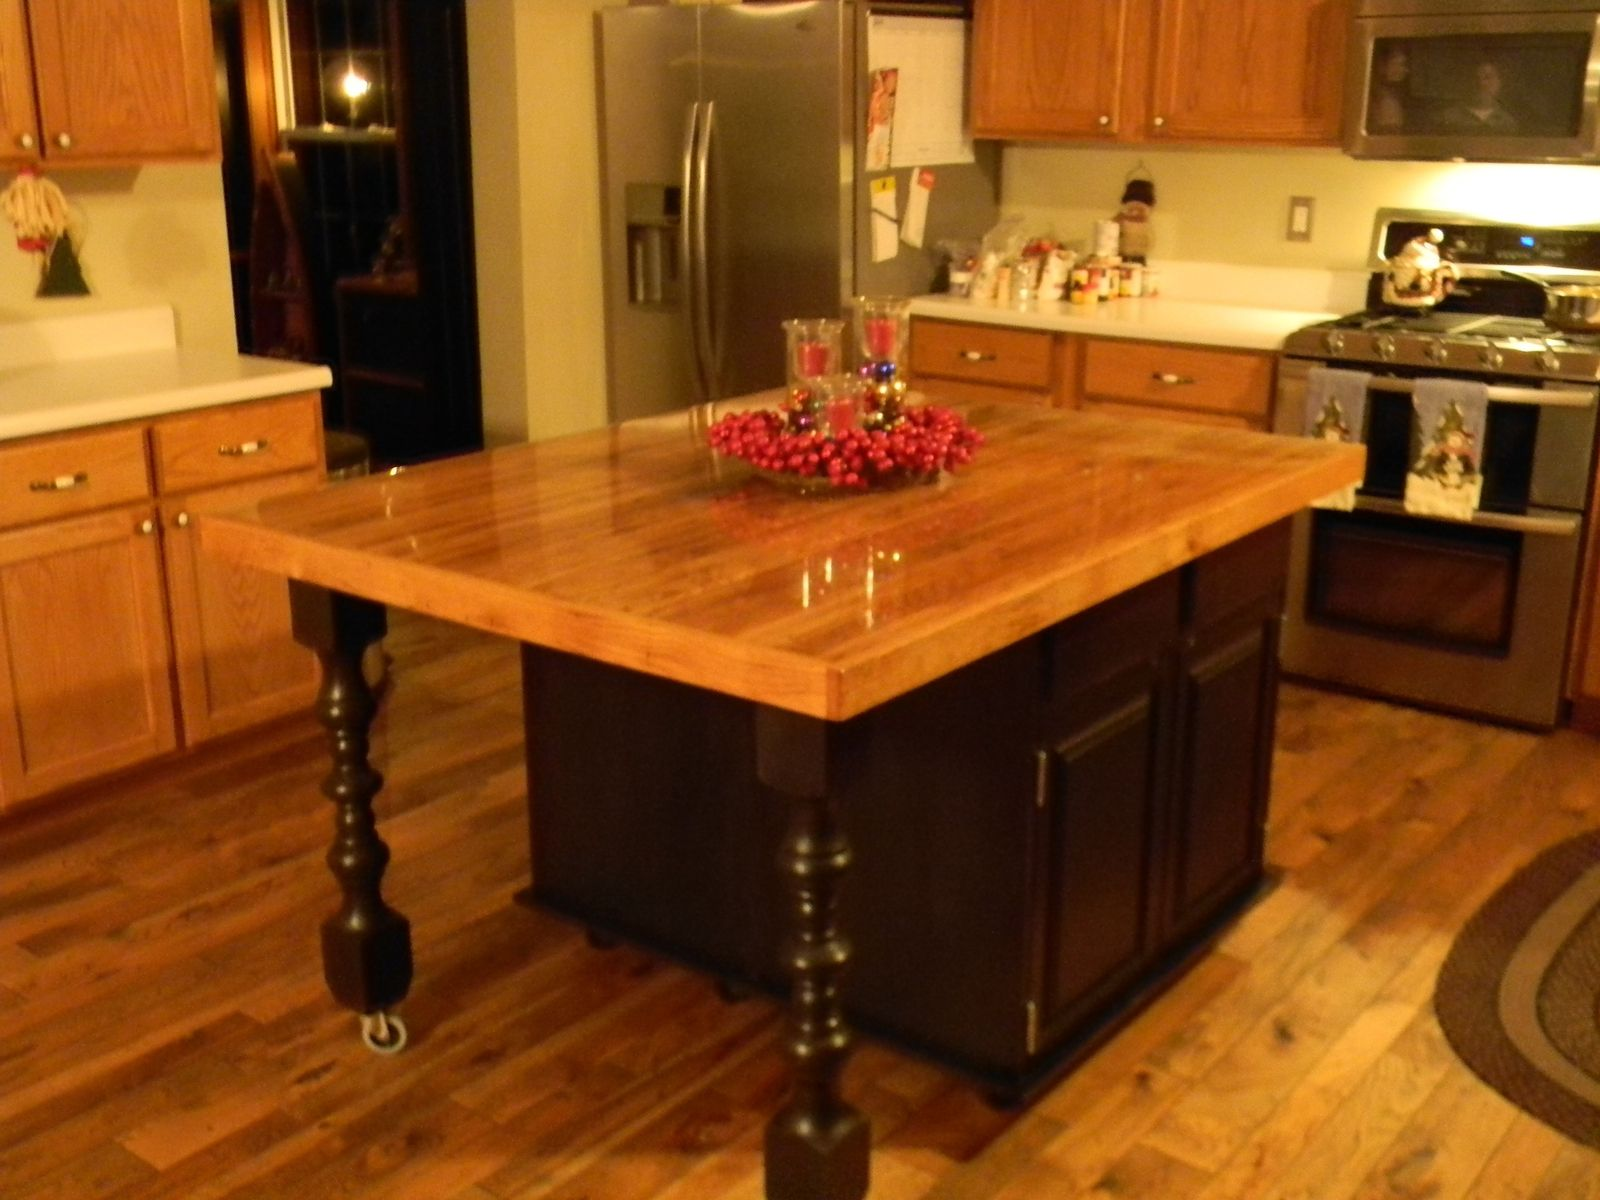 Custom Wood Kitchen Islands Gorgeous Hand Crafted Rustic Barn Wood Kitchen Islandblack Swamp Inspiration